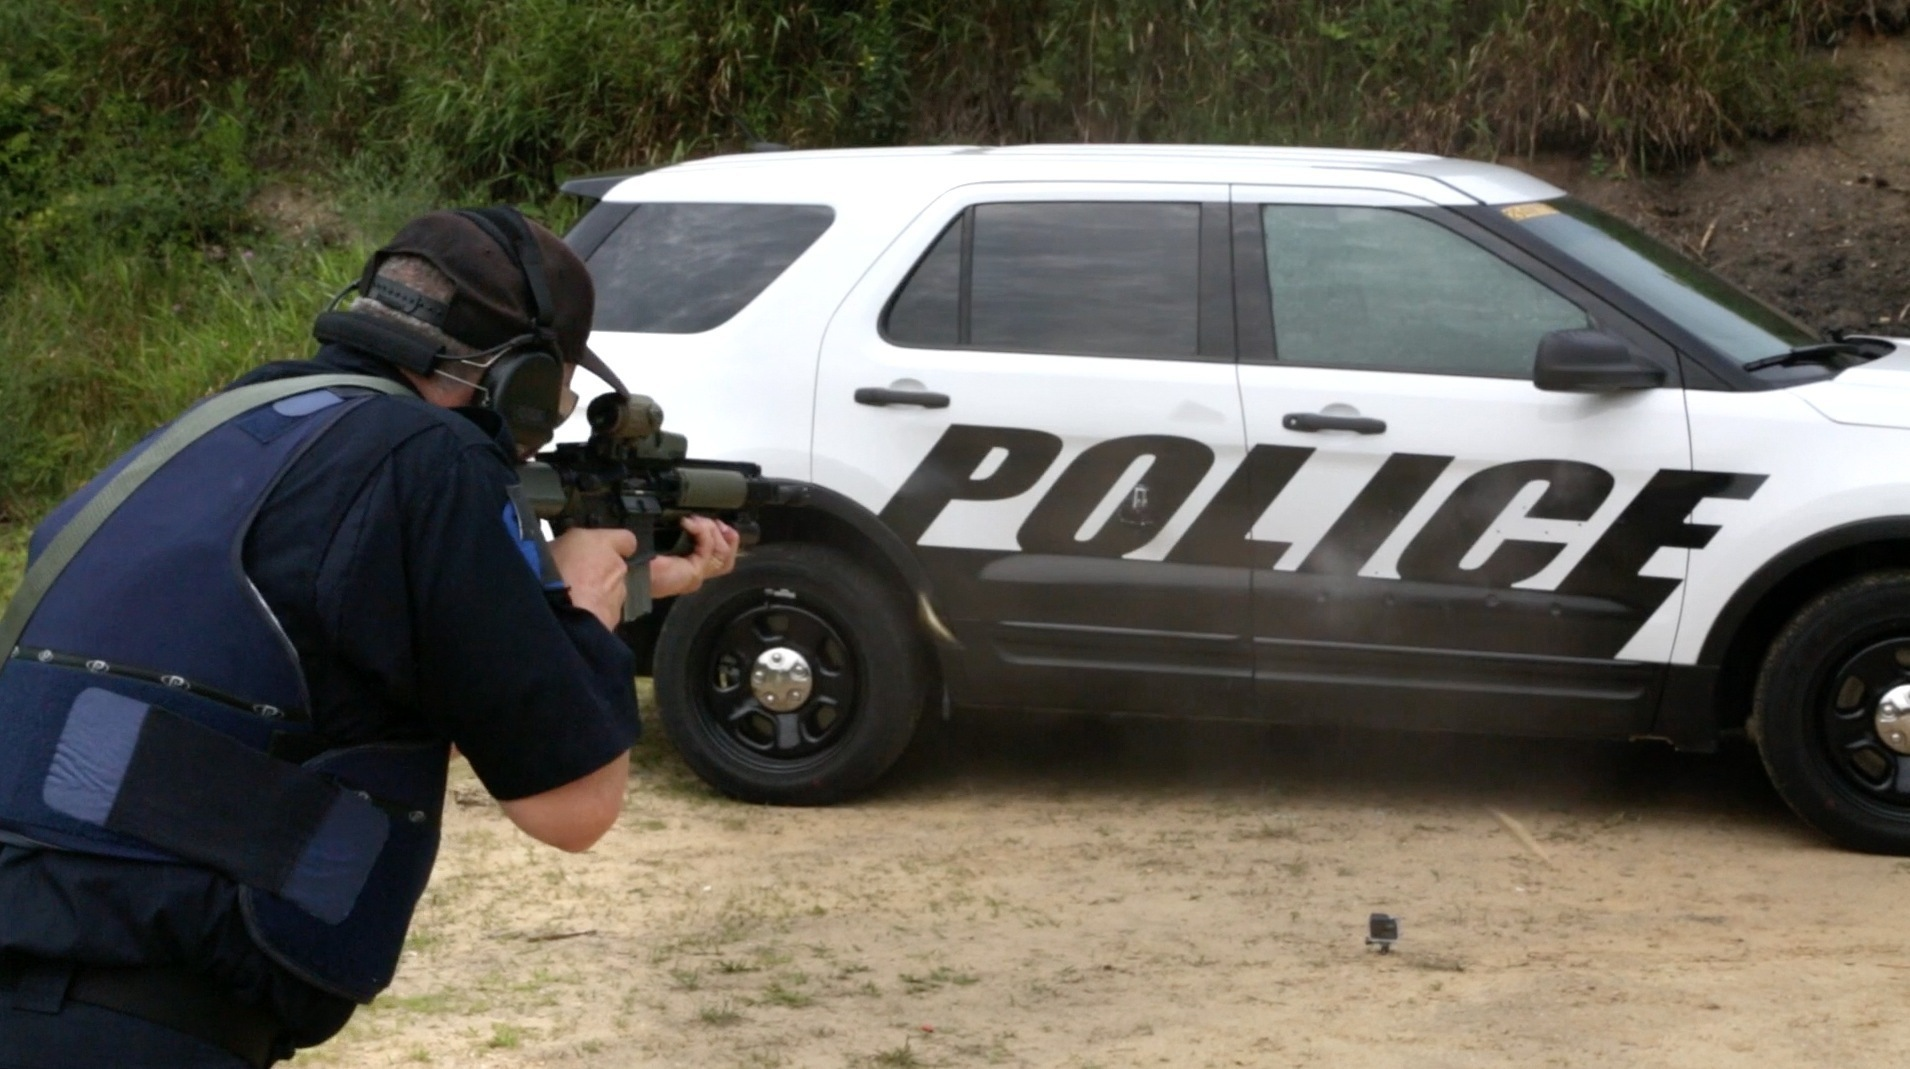 Detroit Ford Makes Police Car Doors That Stop Armor